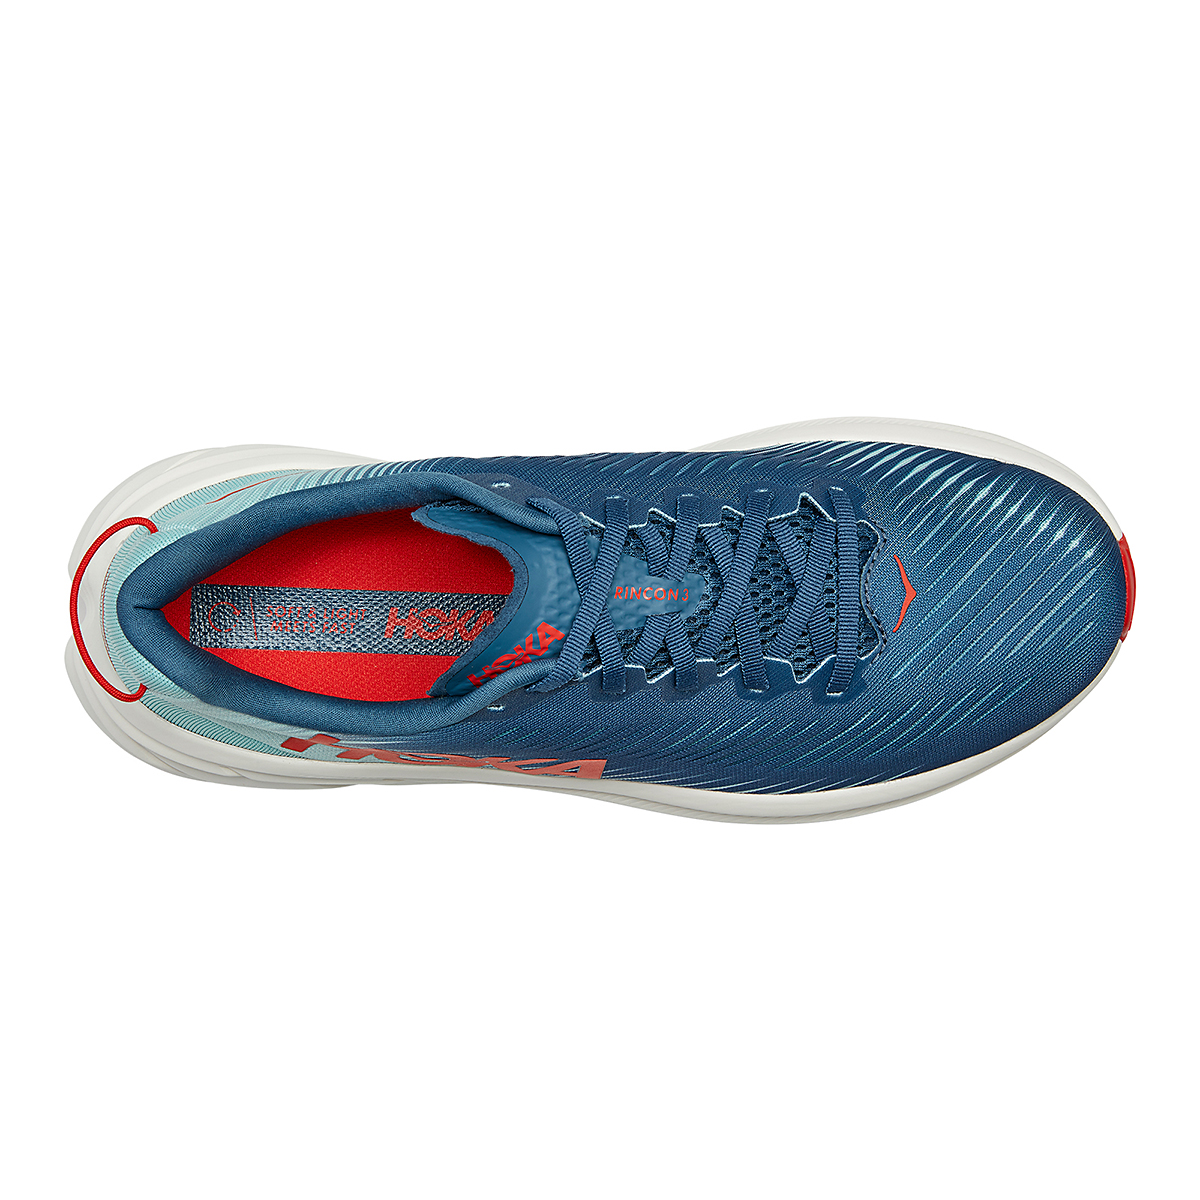 Men's Hoka One One Rincon 3 Running Shoe - Color: Real Teal/Eggshell Blue - Size: 7 - Width: Regular, Real Teal/Eggshell Blue, large, image 5